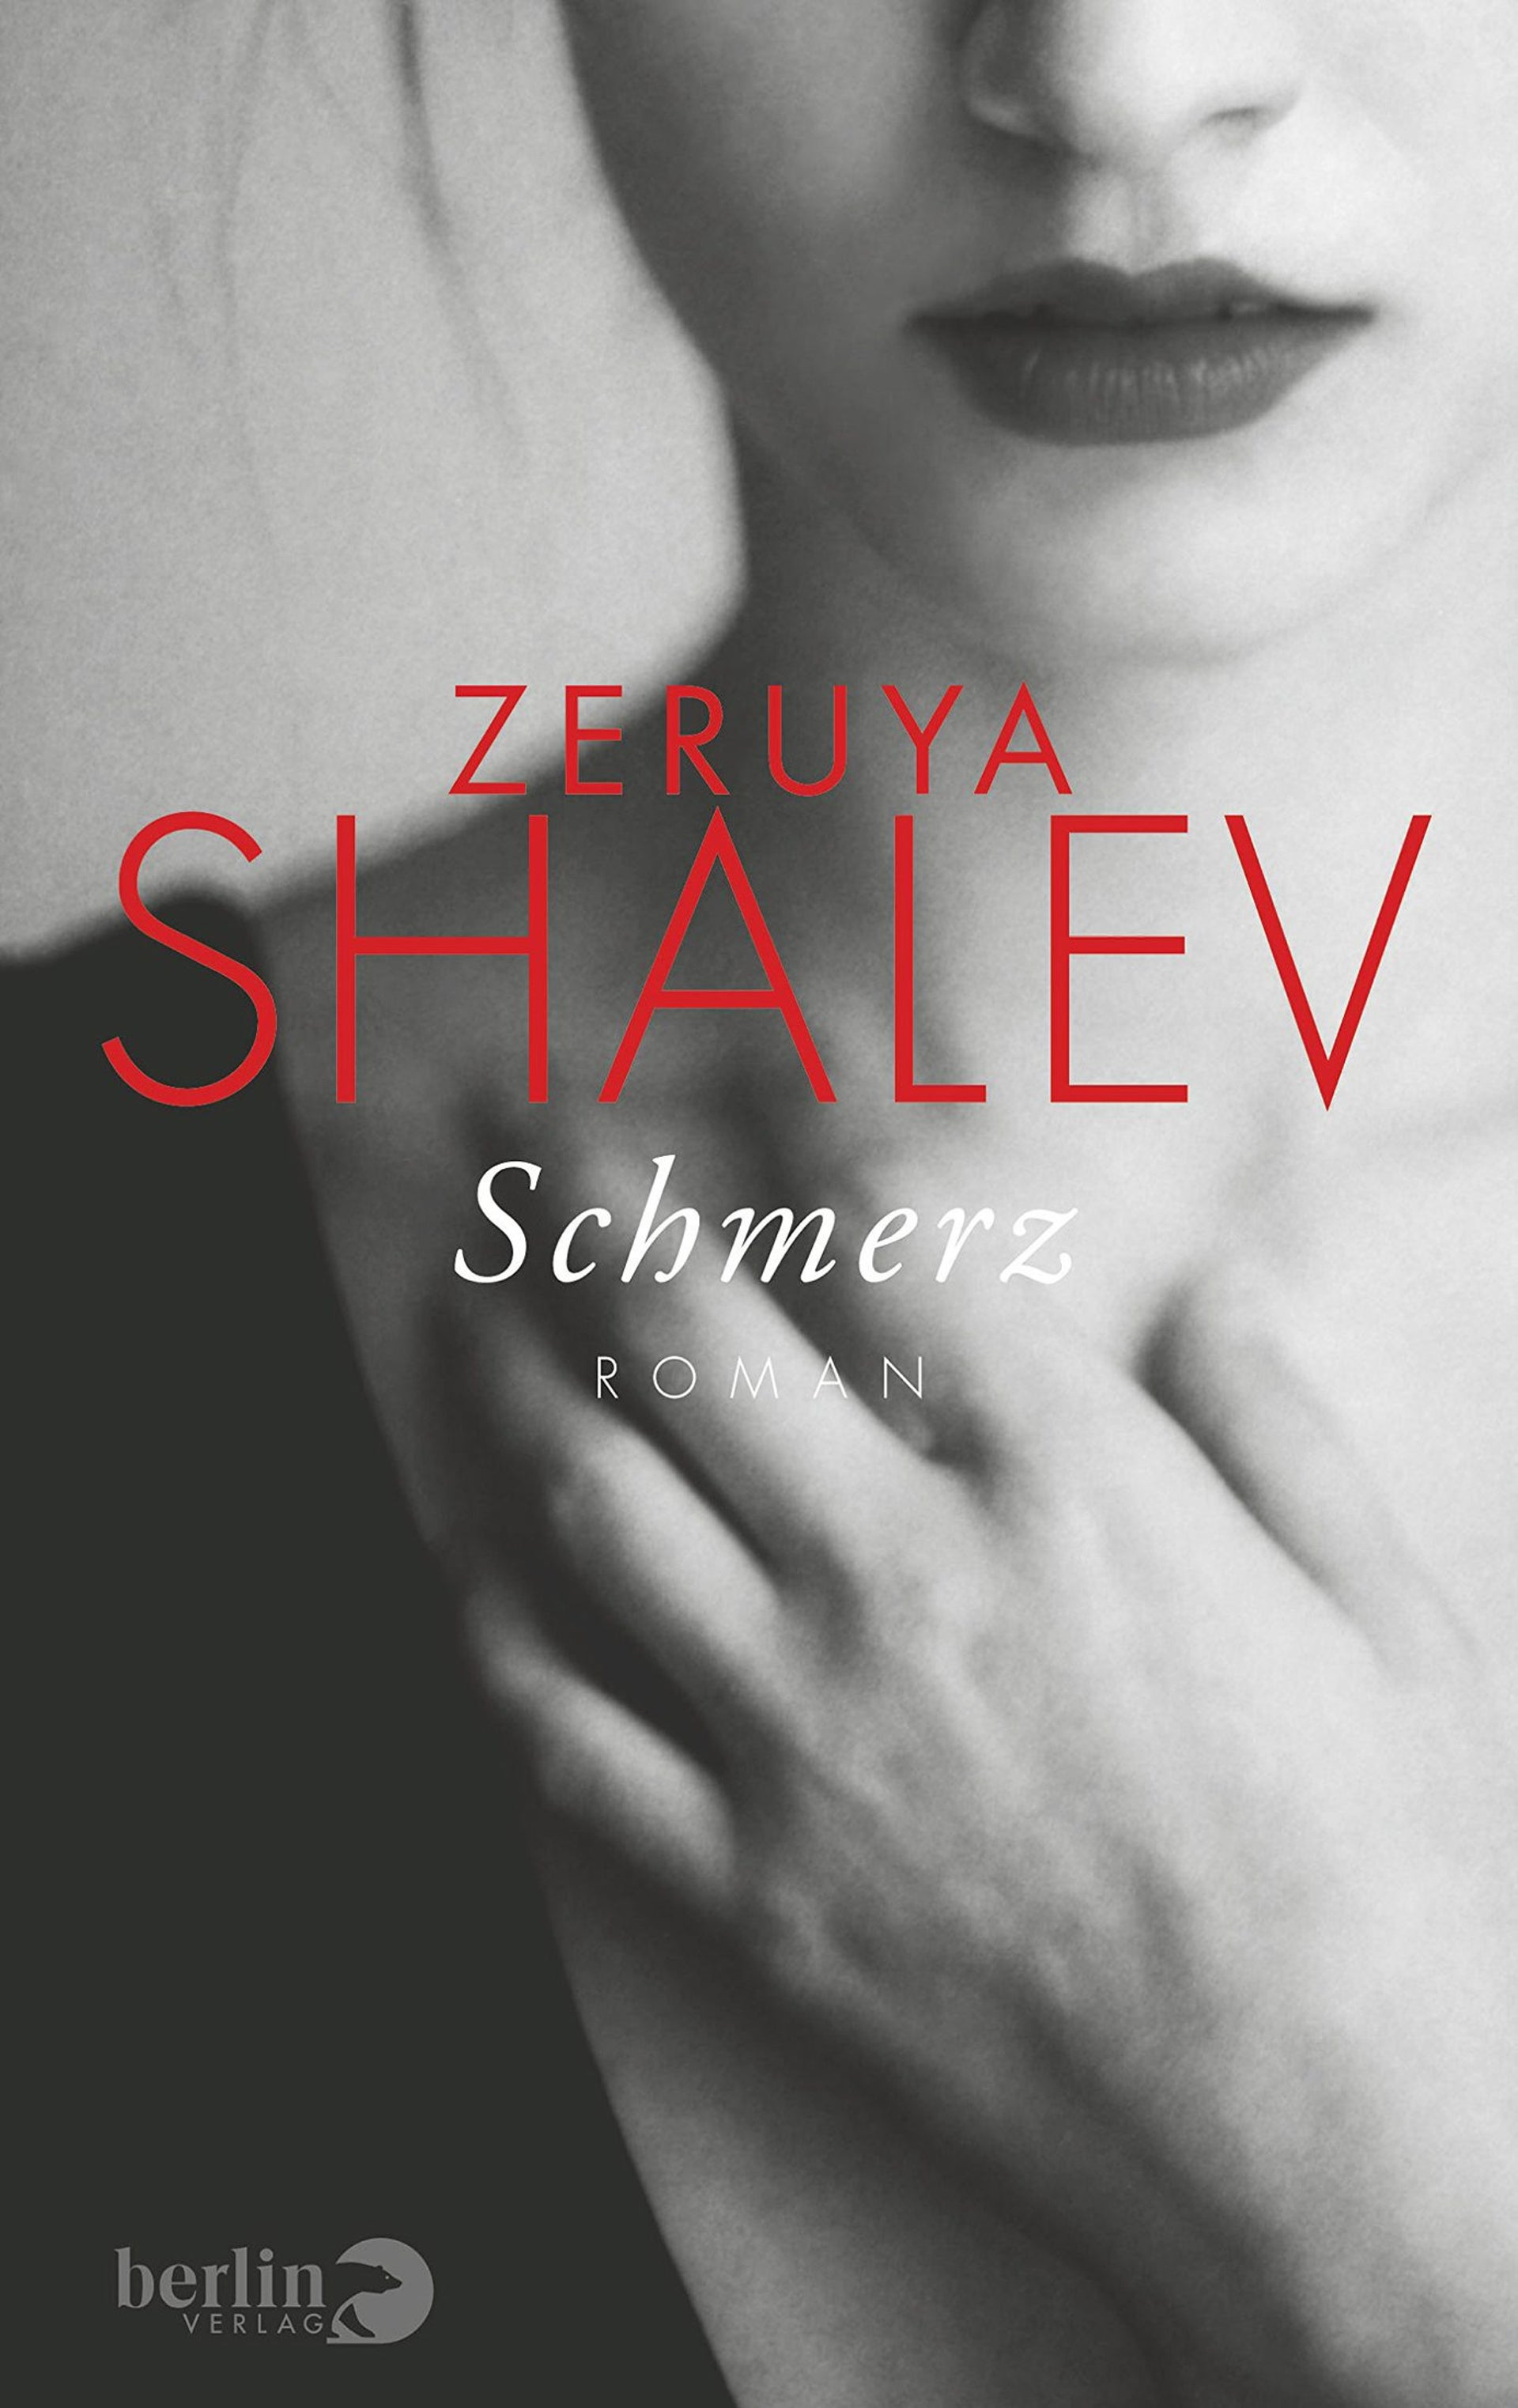 A book by Israeli writer Shalev Zeruya.